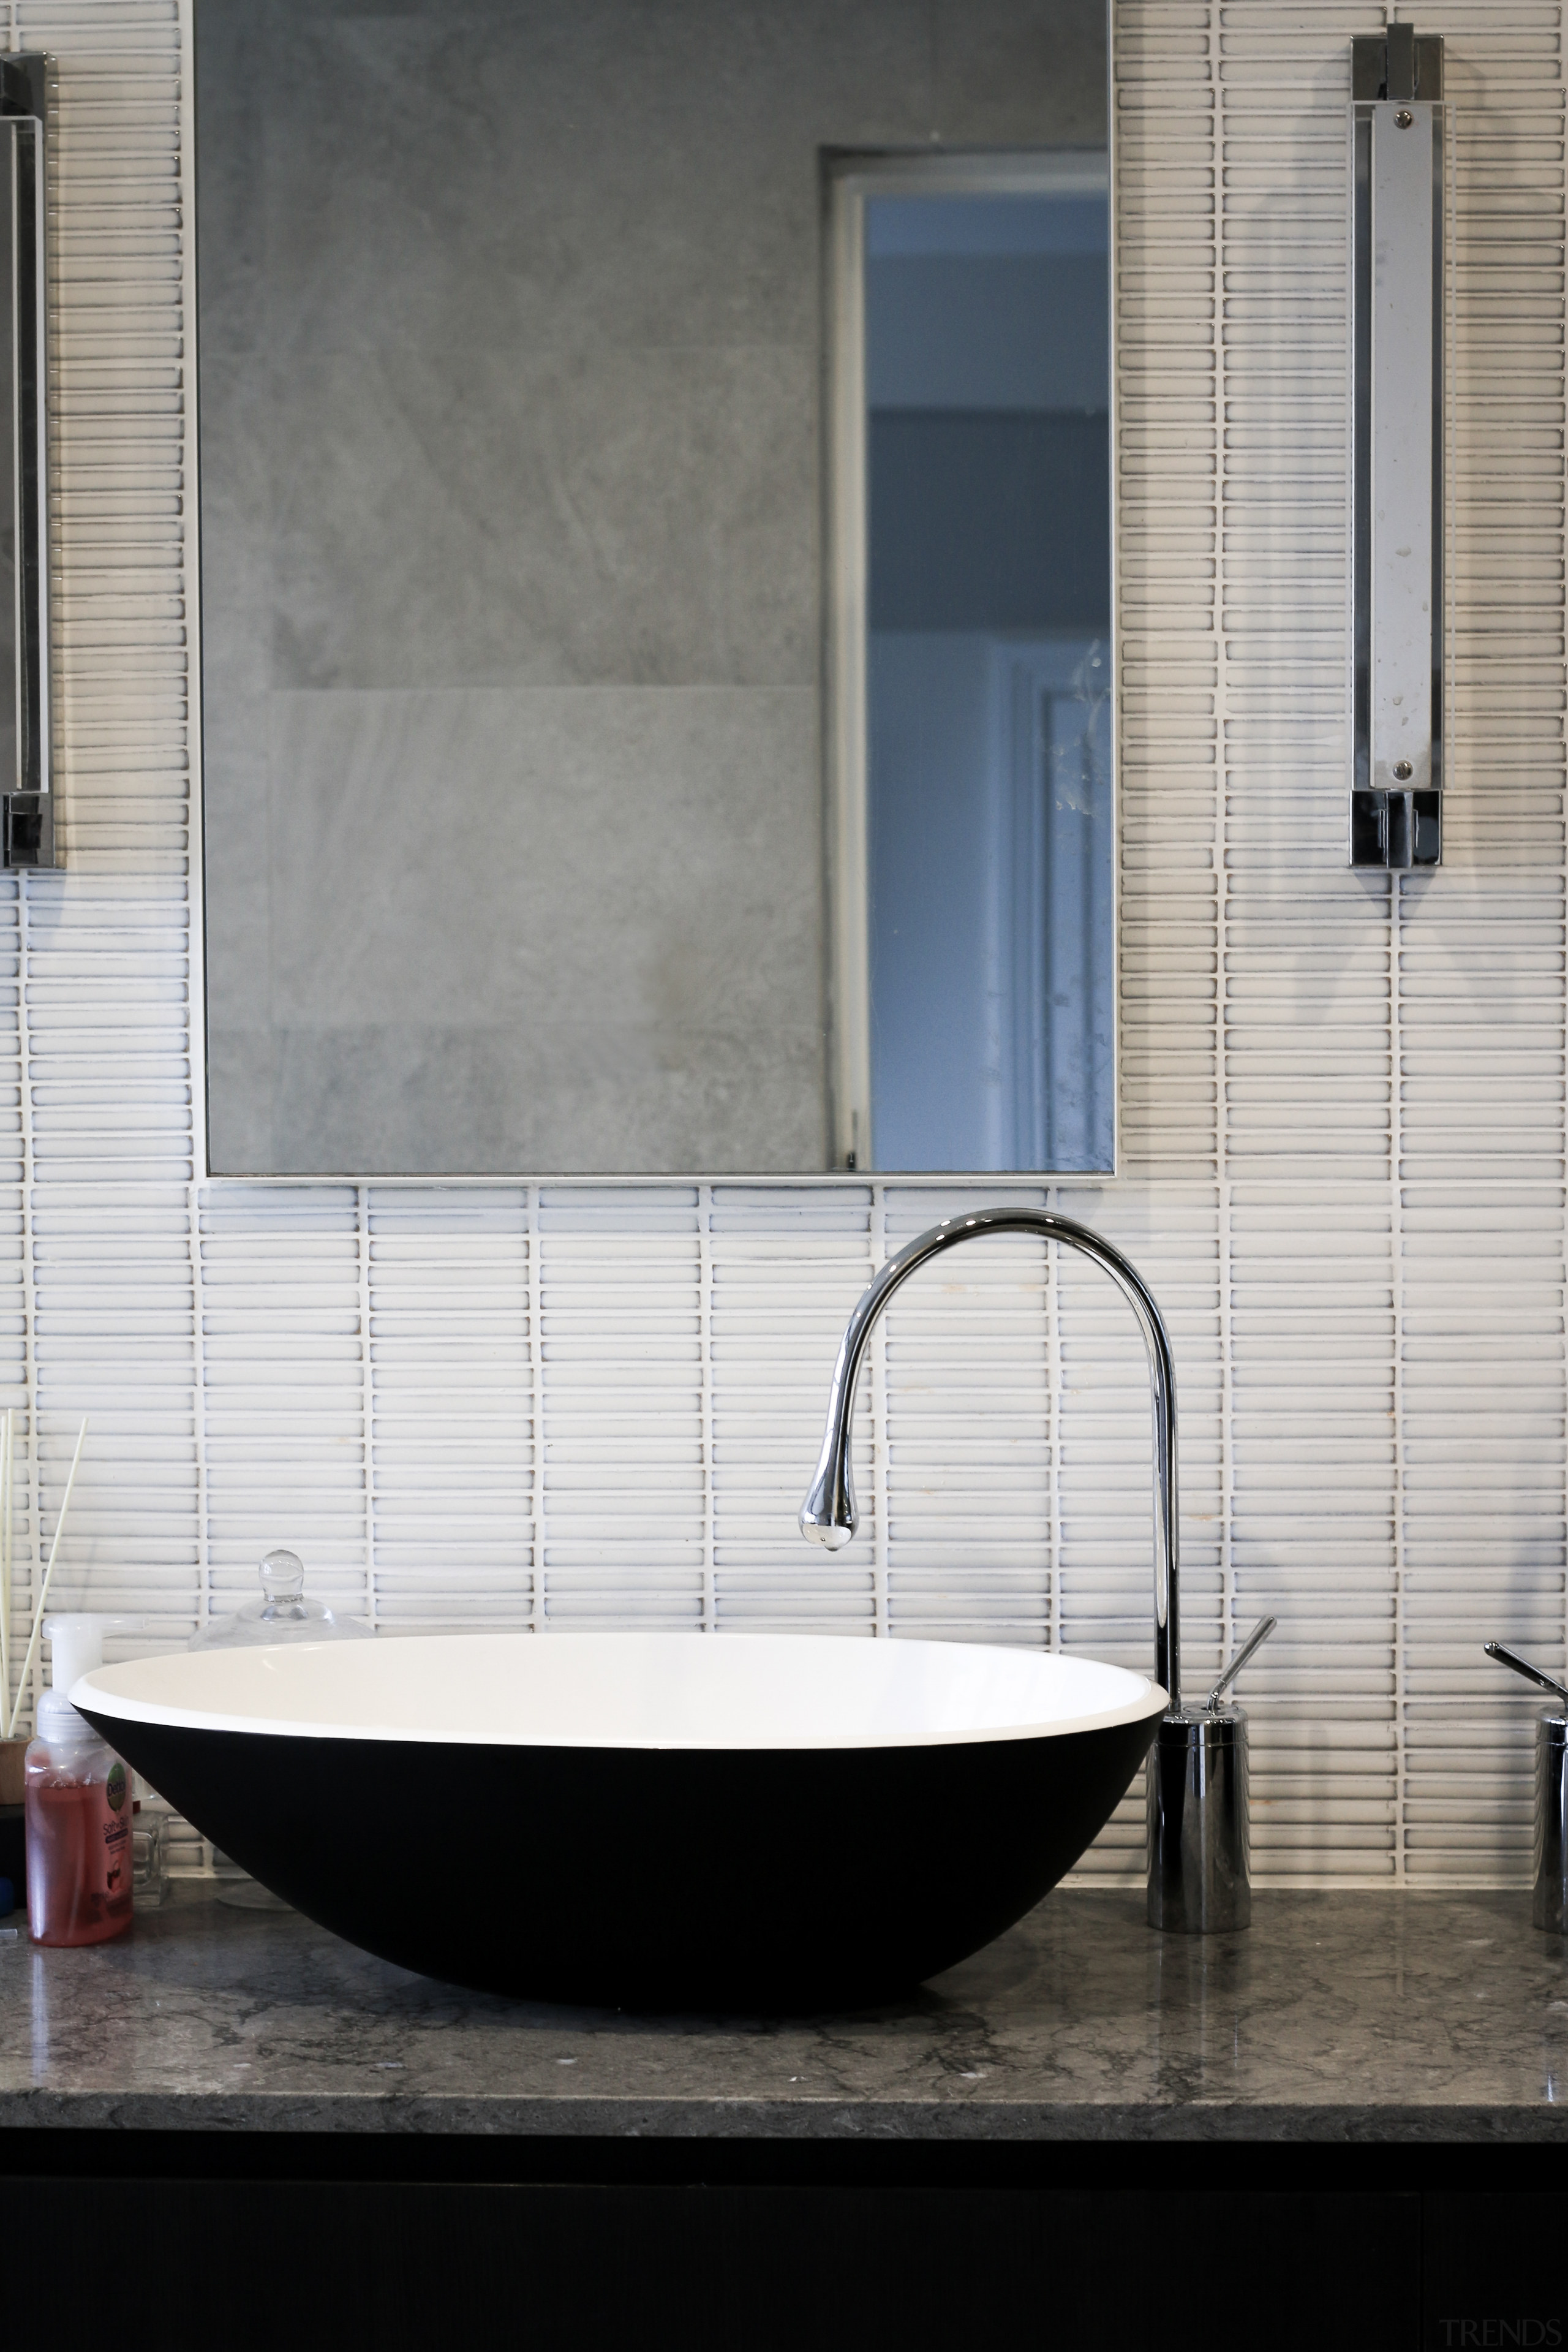 Contemporary elements dovetail with classic, such as Art architecture, bathroom, bathtub, black, door, floor, flooring, glass, house, interior design, material property, plumbing fixture, property, room, shade, tile, wall, window, gray